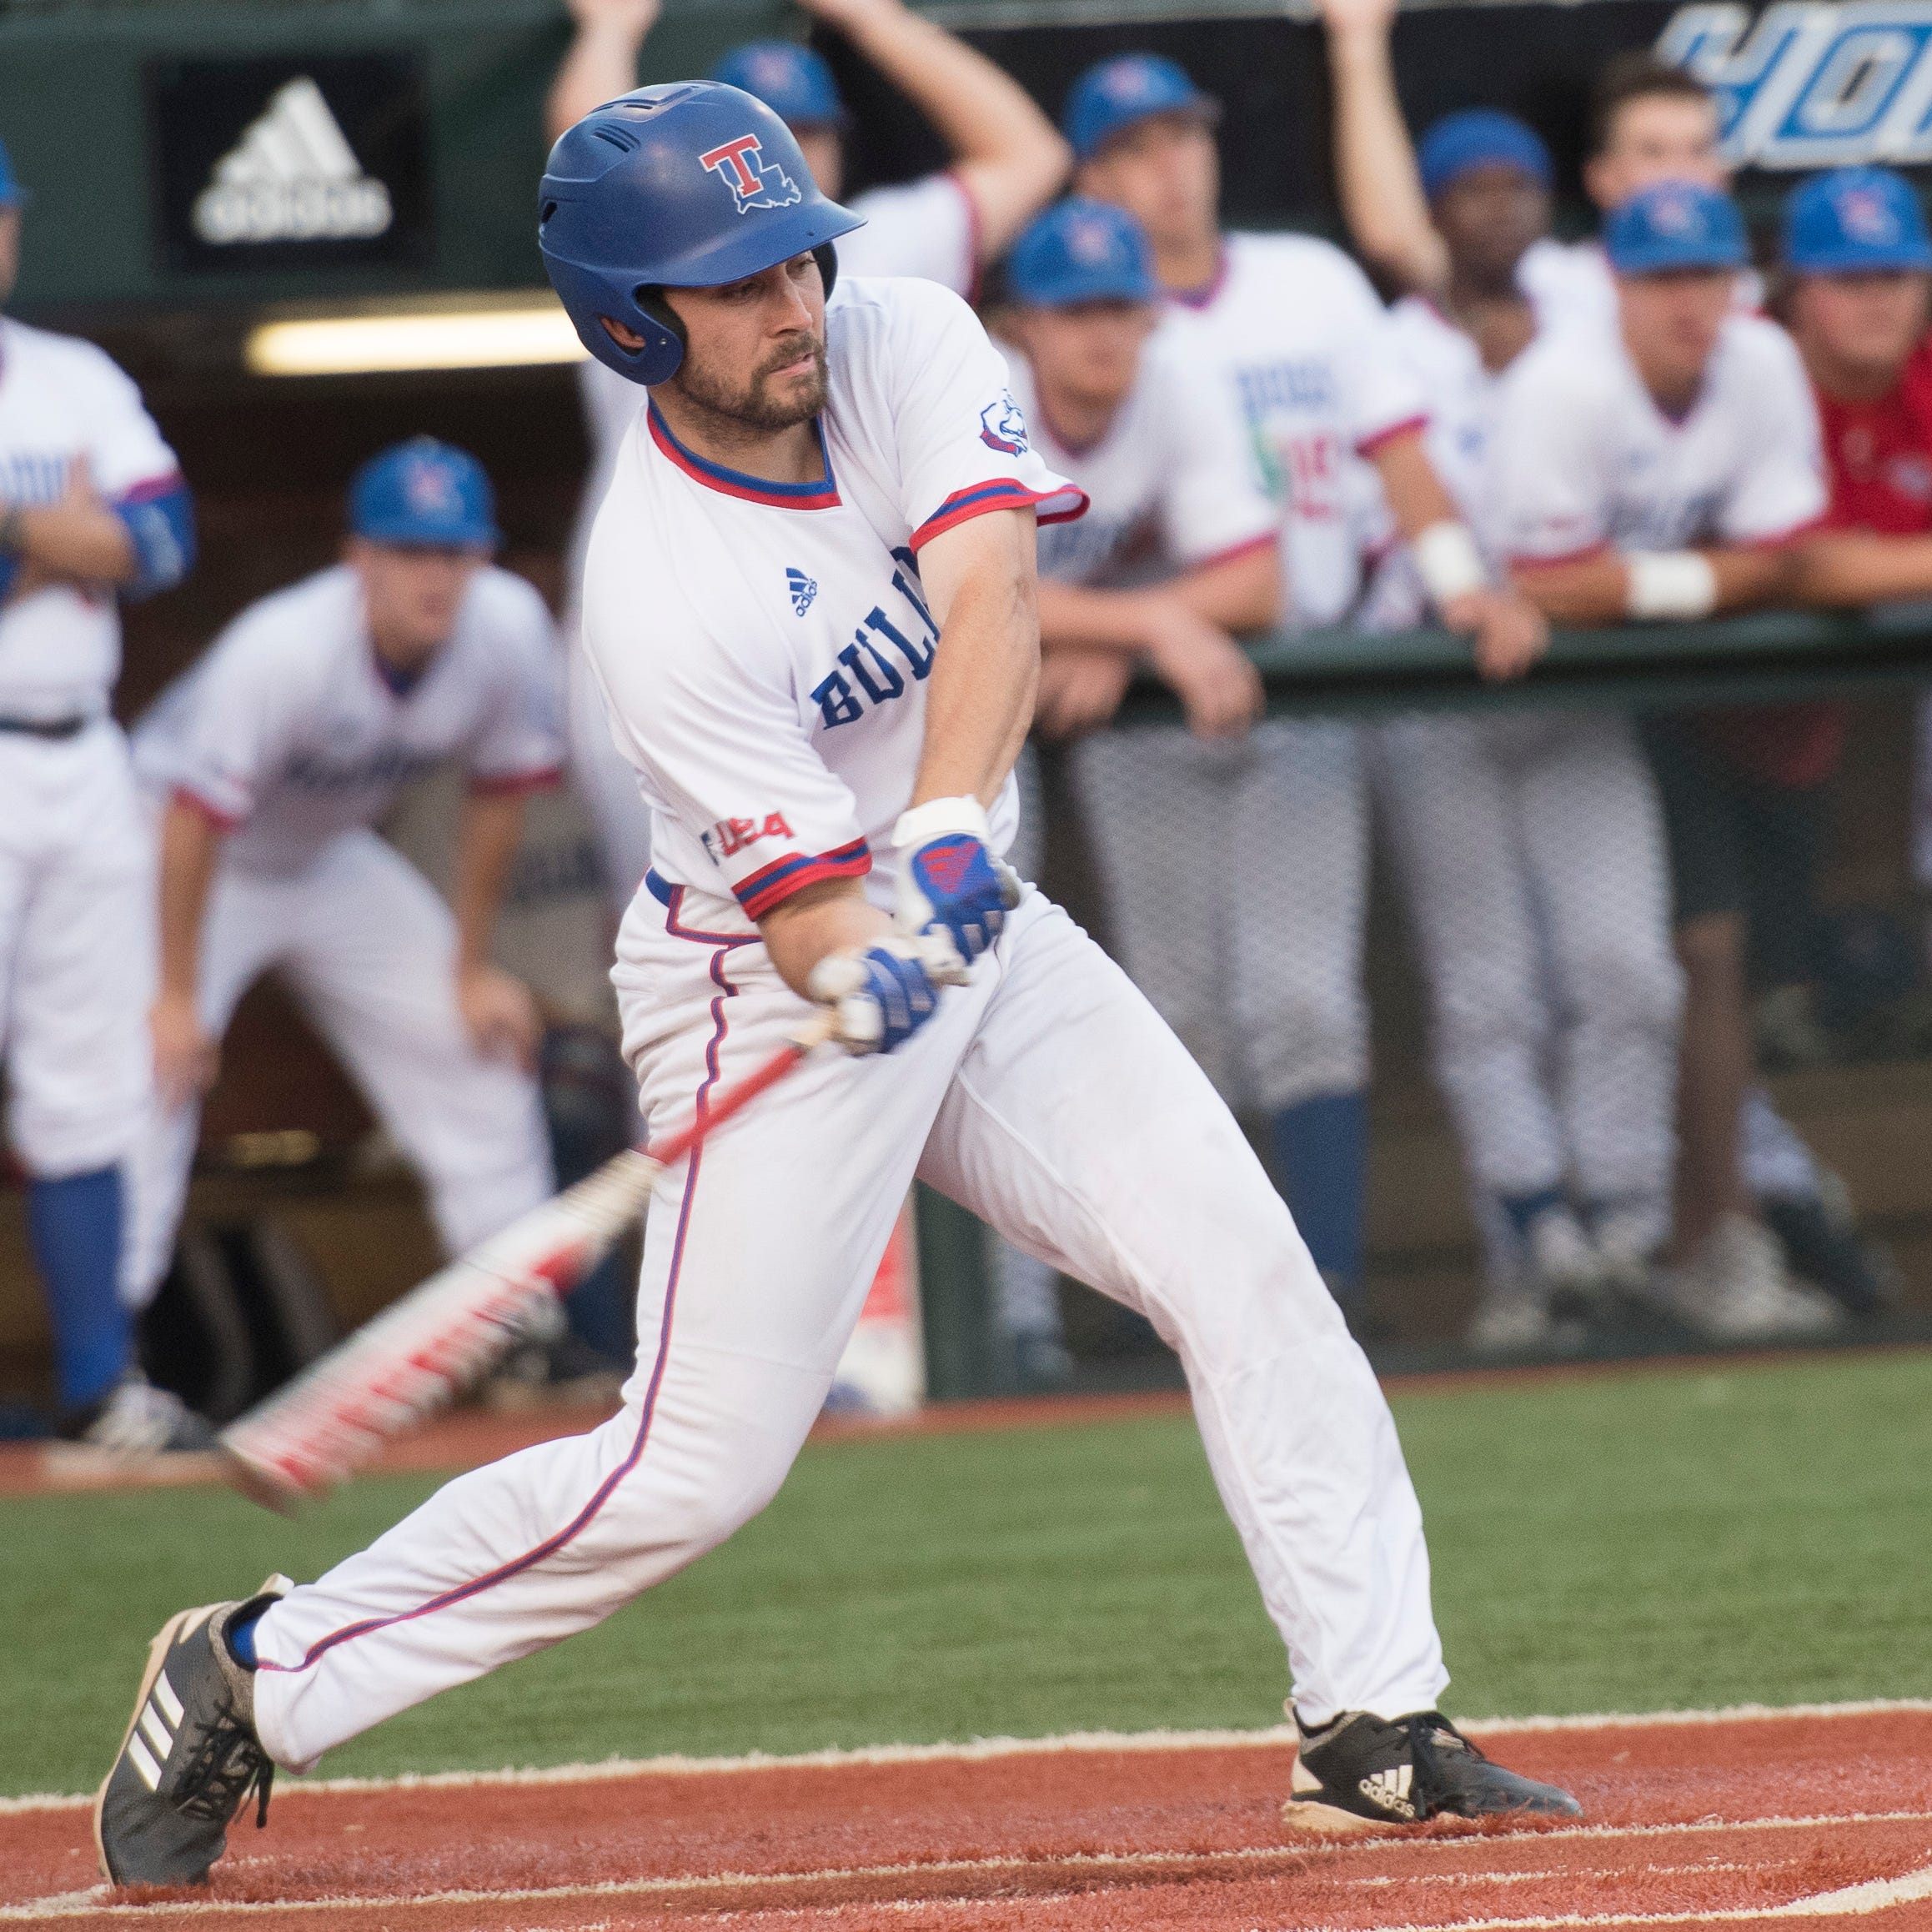 'It's the moment': Wells' walkoff homer lifts LA Tech over Little Rock